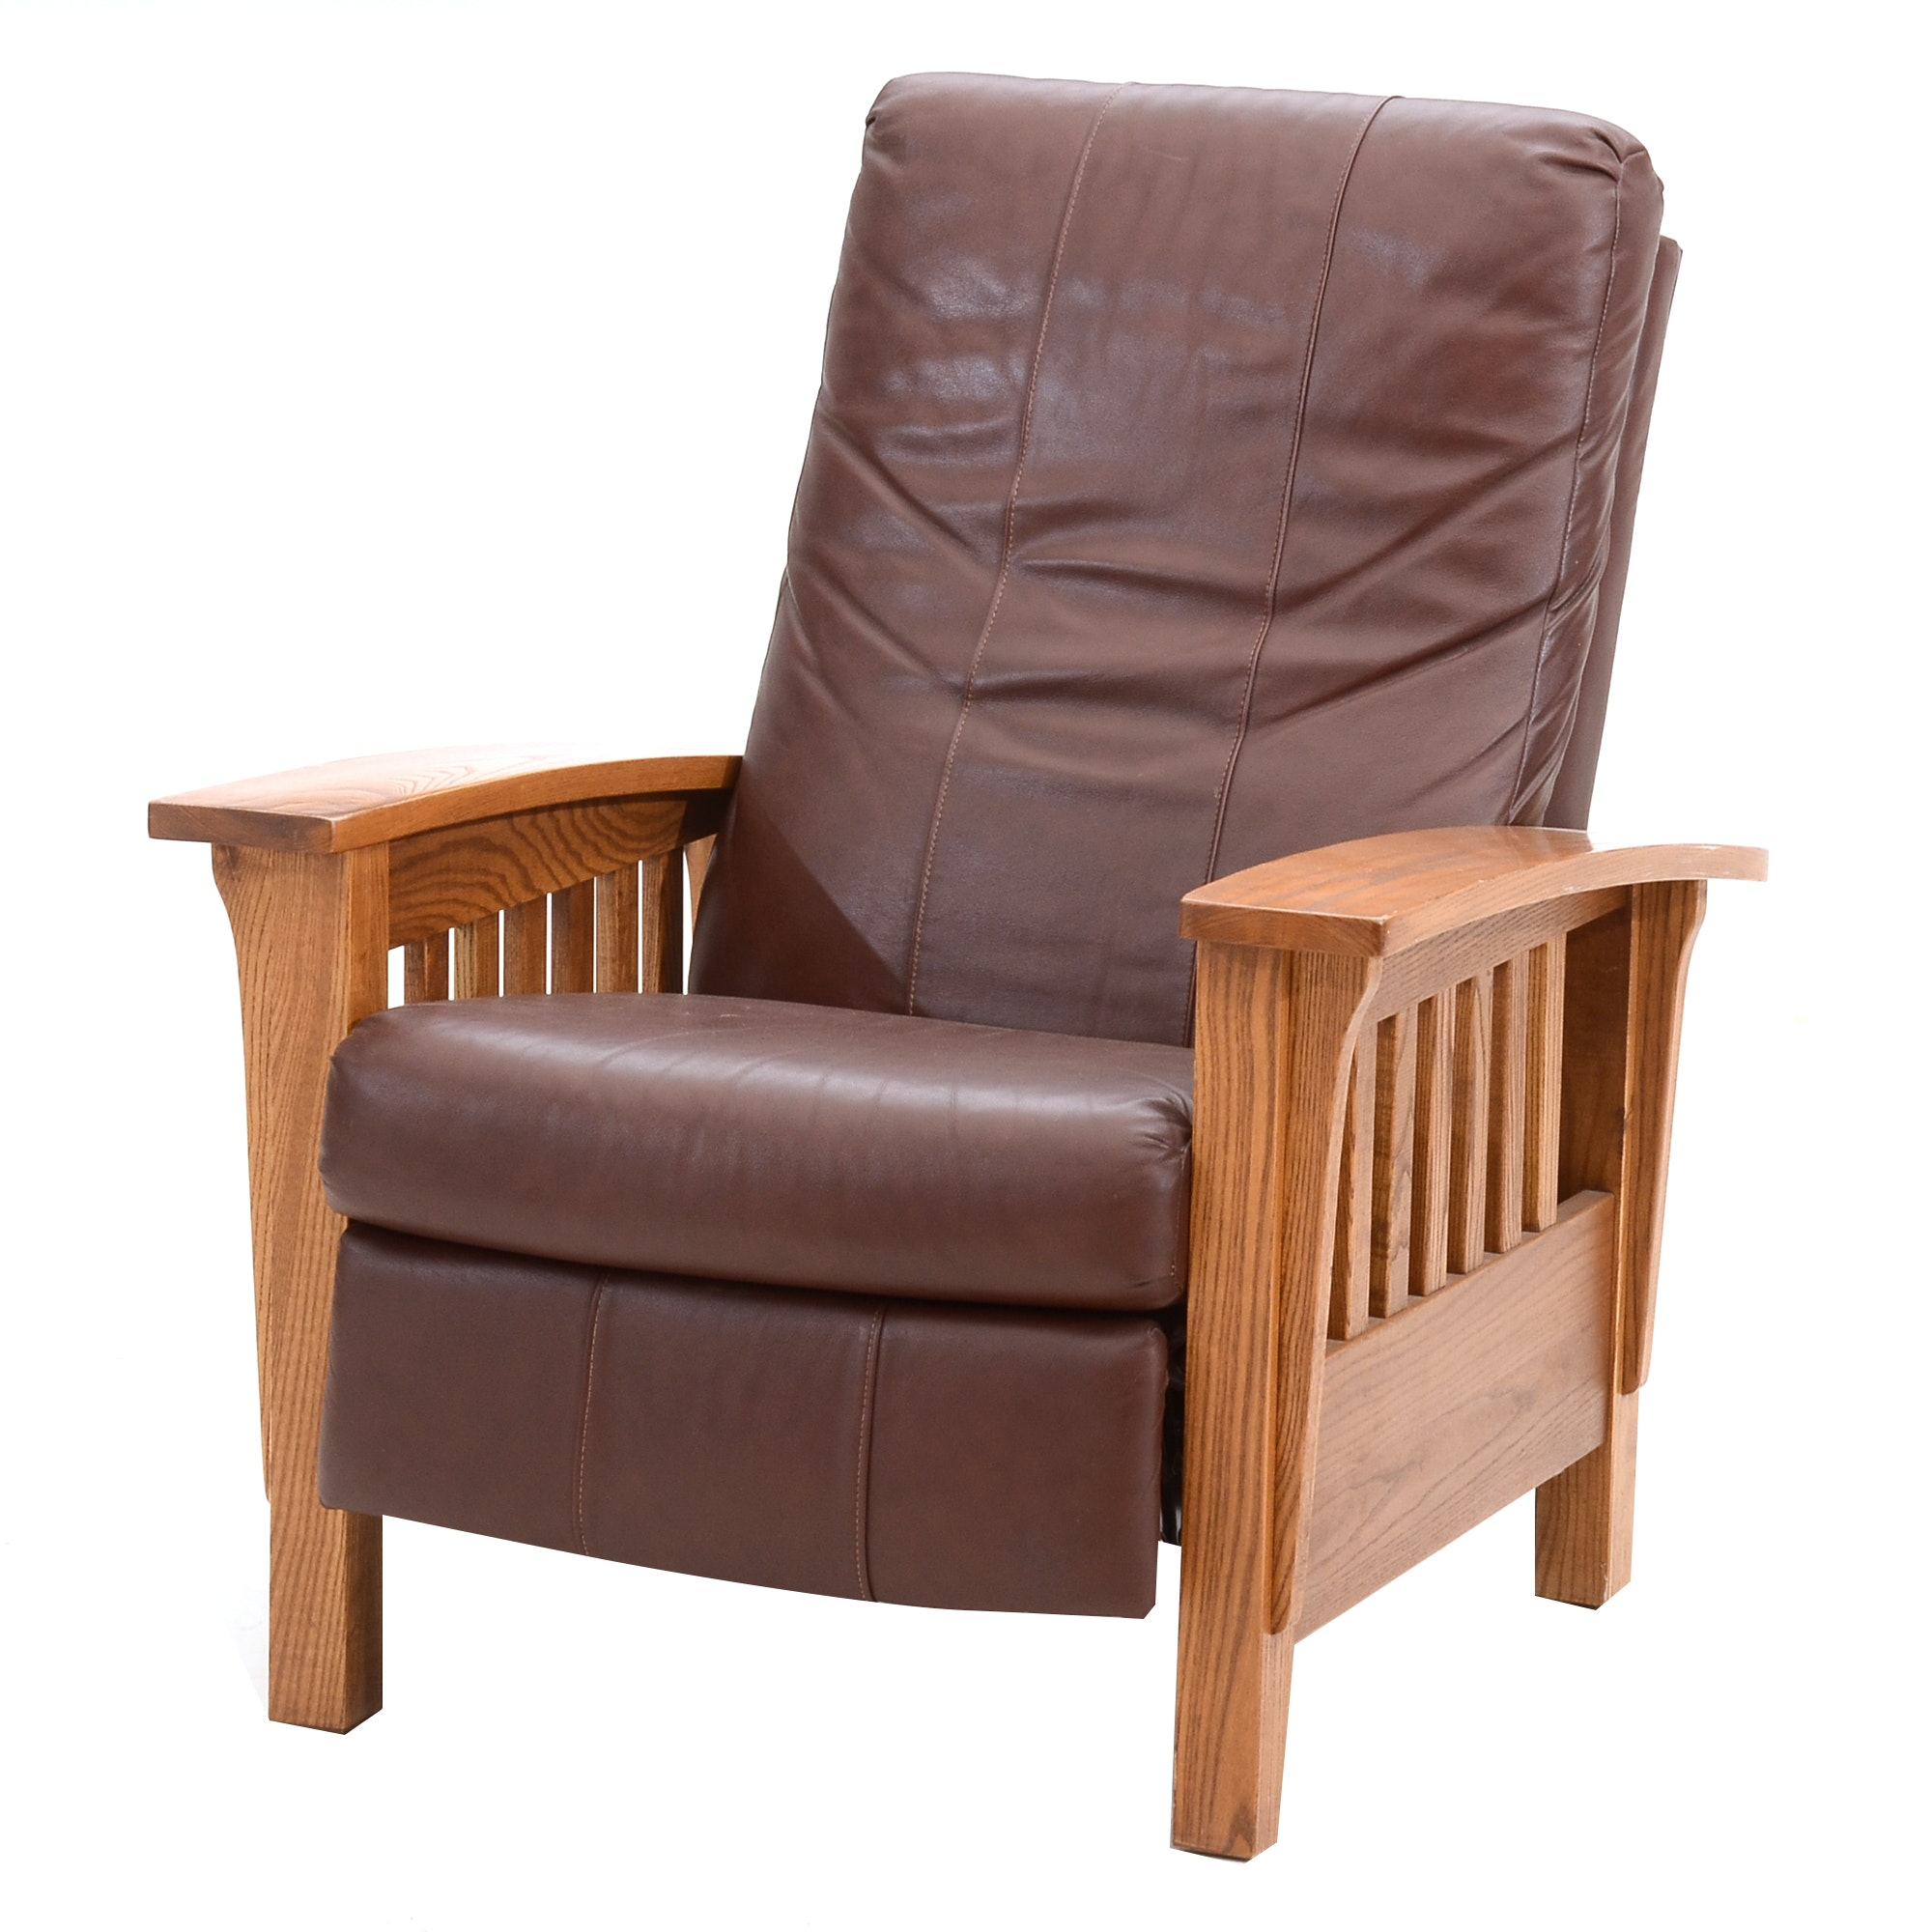 Barcalounger Leather Recliner  Morris  Chair ...  sc 1 st  EBTH.com & Barcalounger Leather Recliner